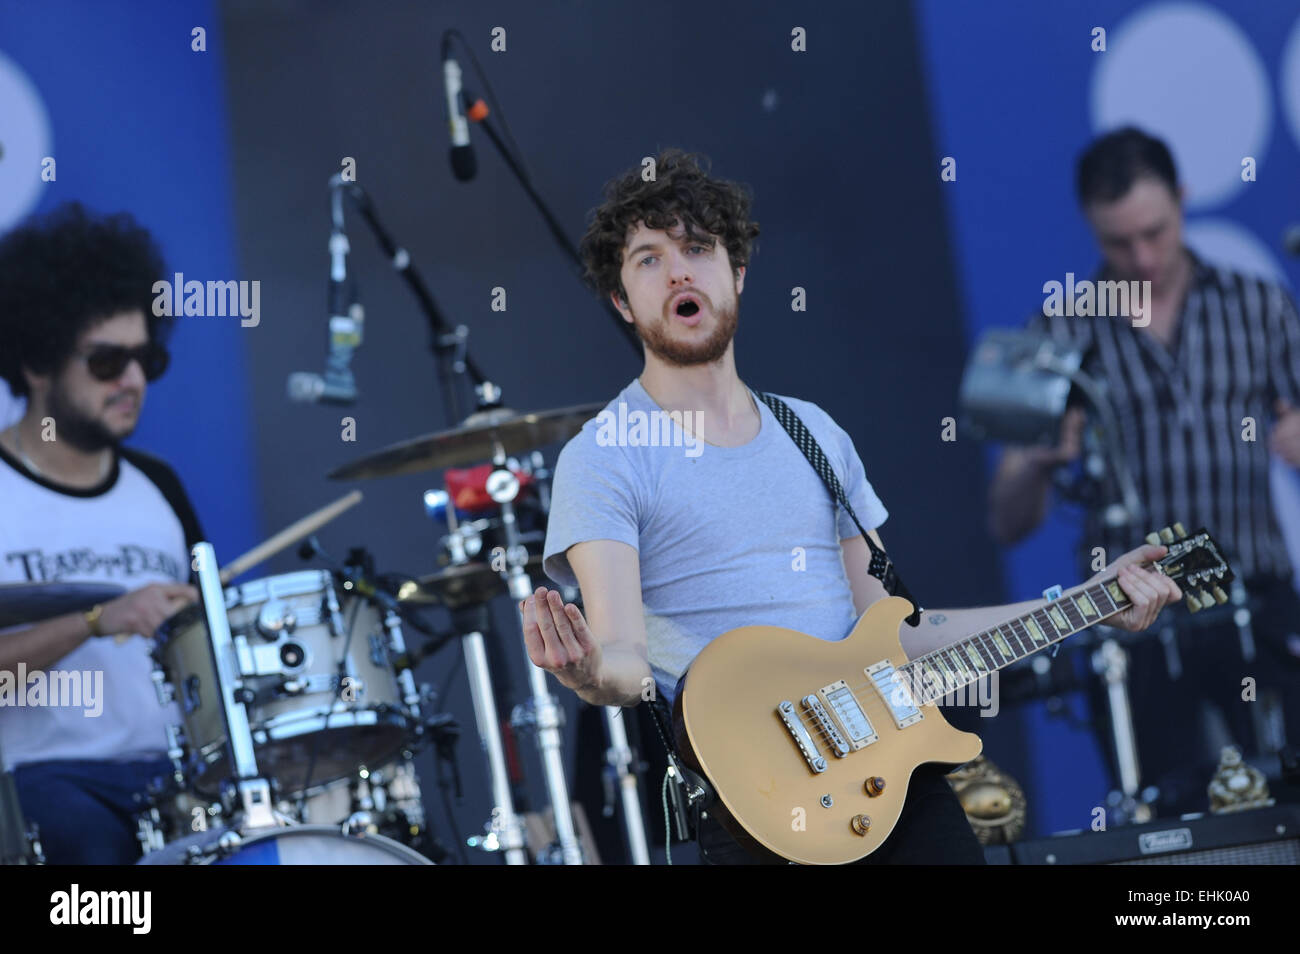 Santiago, Chile. 14th Mar, 2015. Members of the British band 'The Kooks', perform during the Lollapalooza - Stock Image